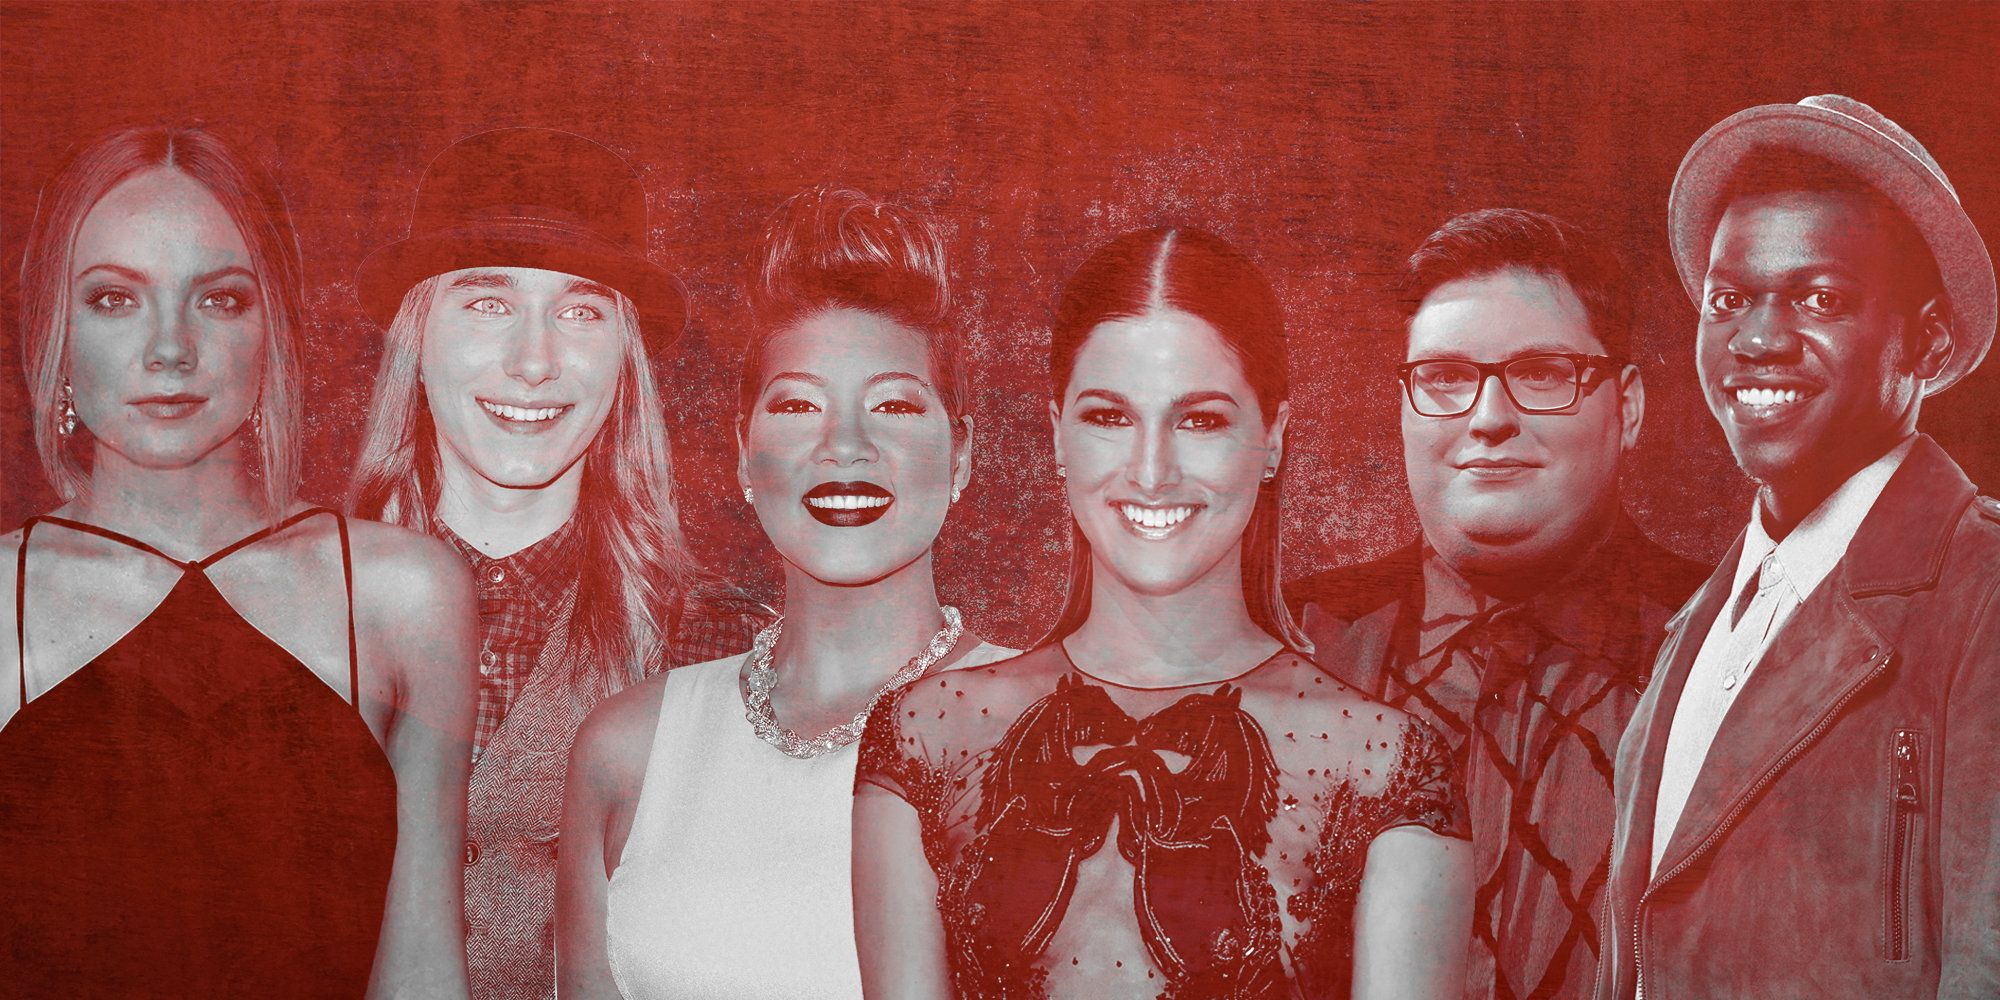 'The Voice' Is Great TV. It's Just Not Always Great For The Winners. | HuffPost